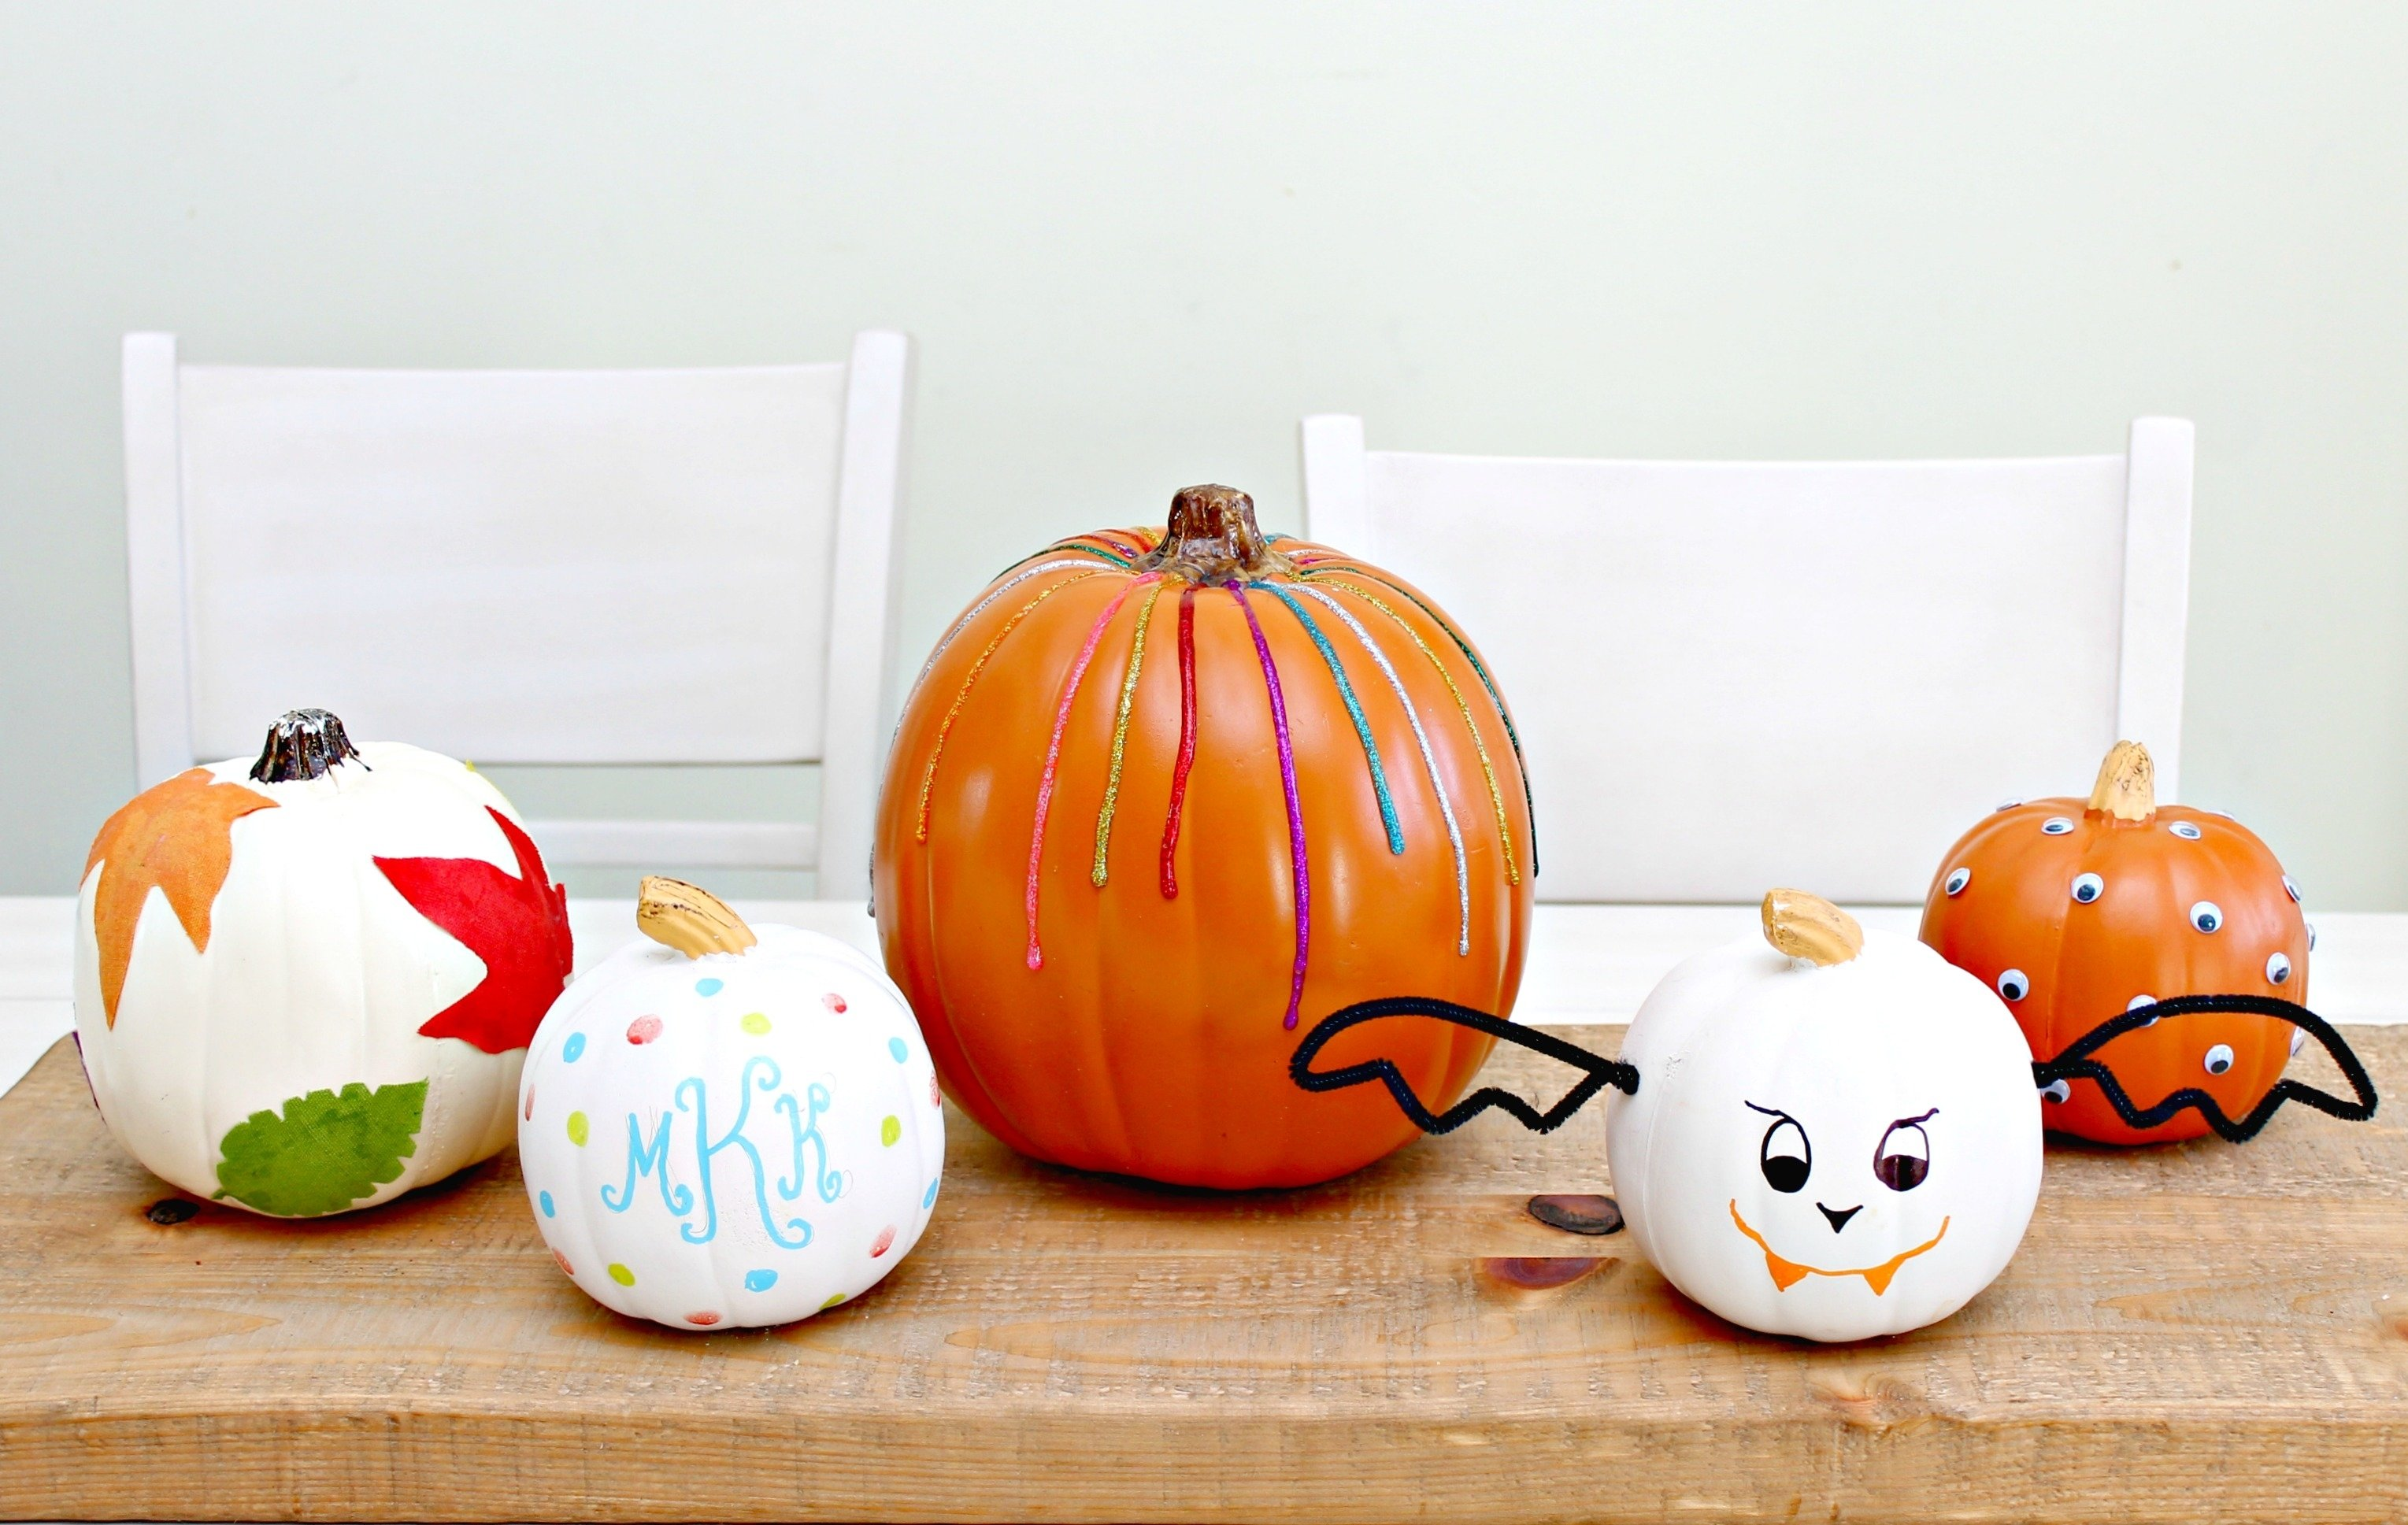 10 Most Recommended Pumpkin Decorating Ideas For Kids no carve pumpkin decorating ideas mom 4 real 11 2020